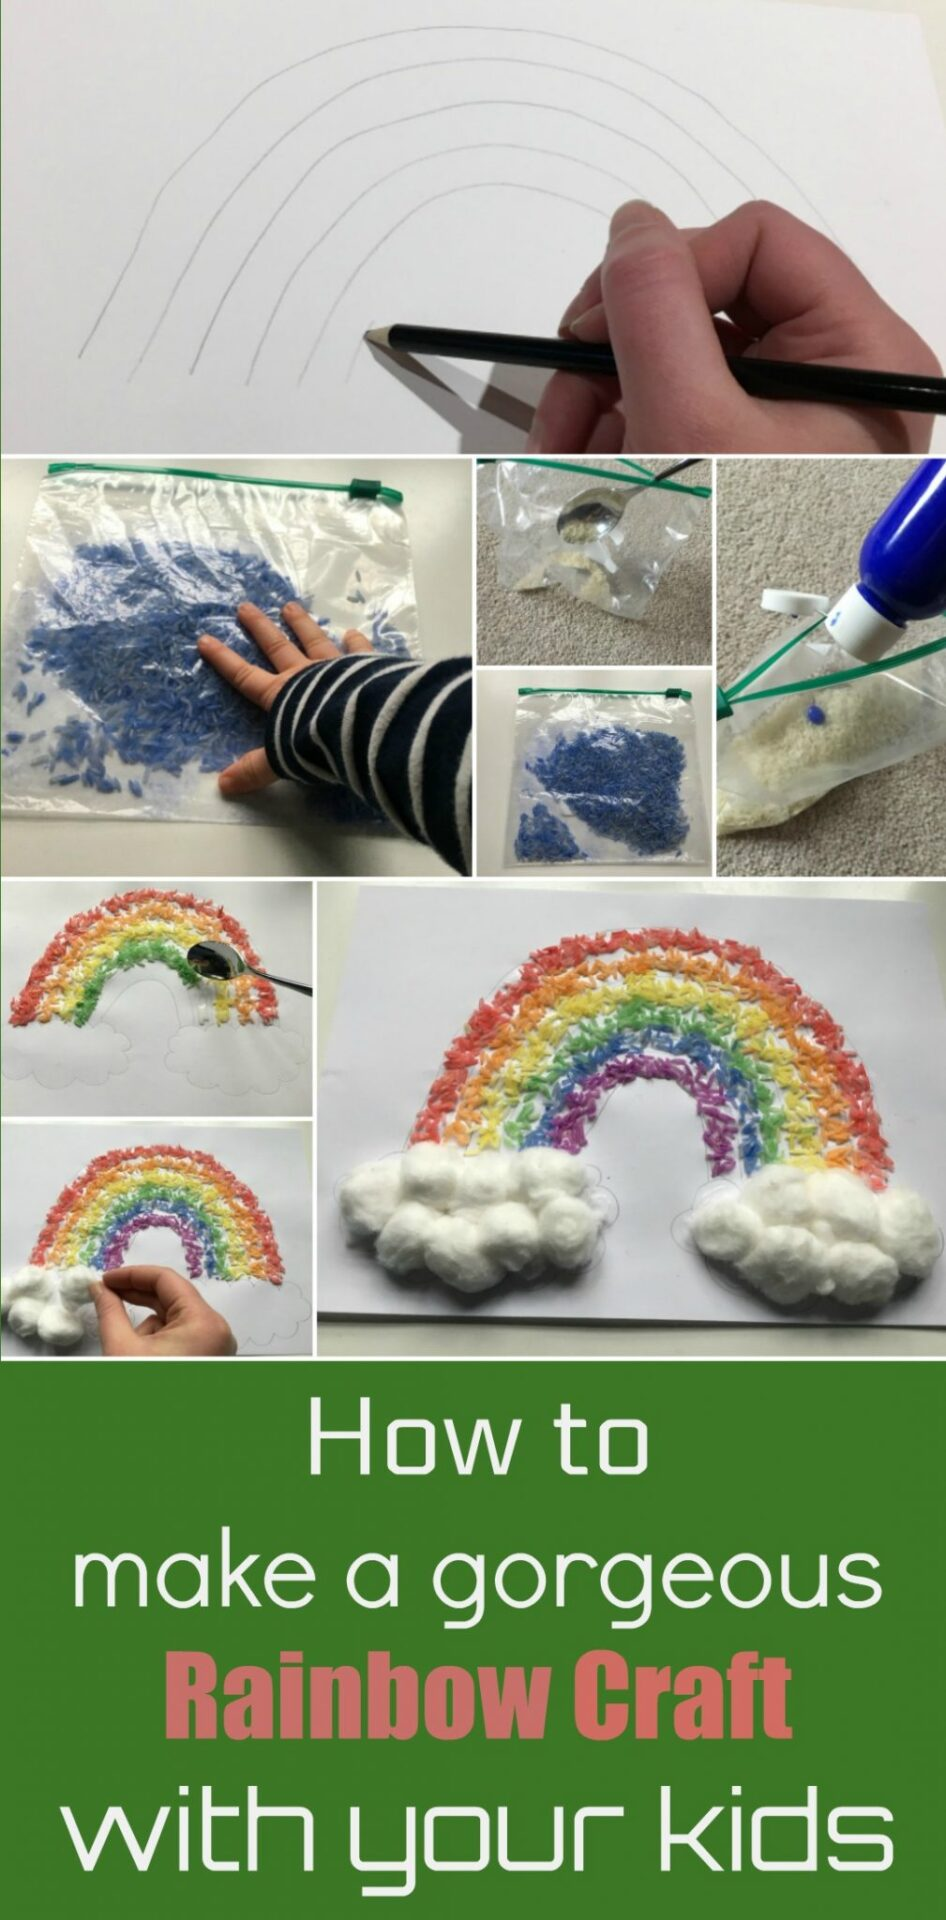 This rainbow craft is lovely to do with the kids - something special for a rainy day, when perhaps there is a rainbow outside - or just any day!